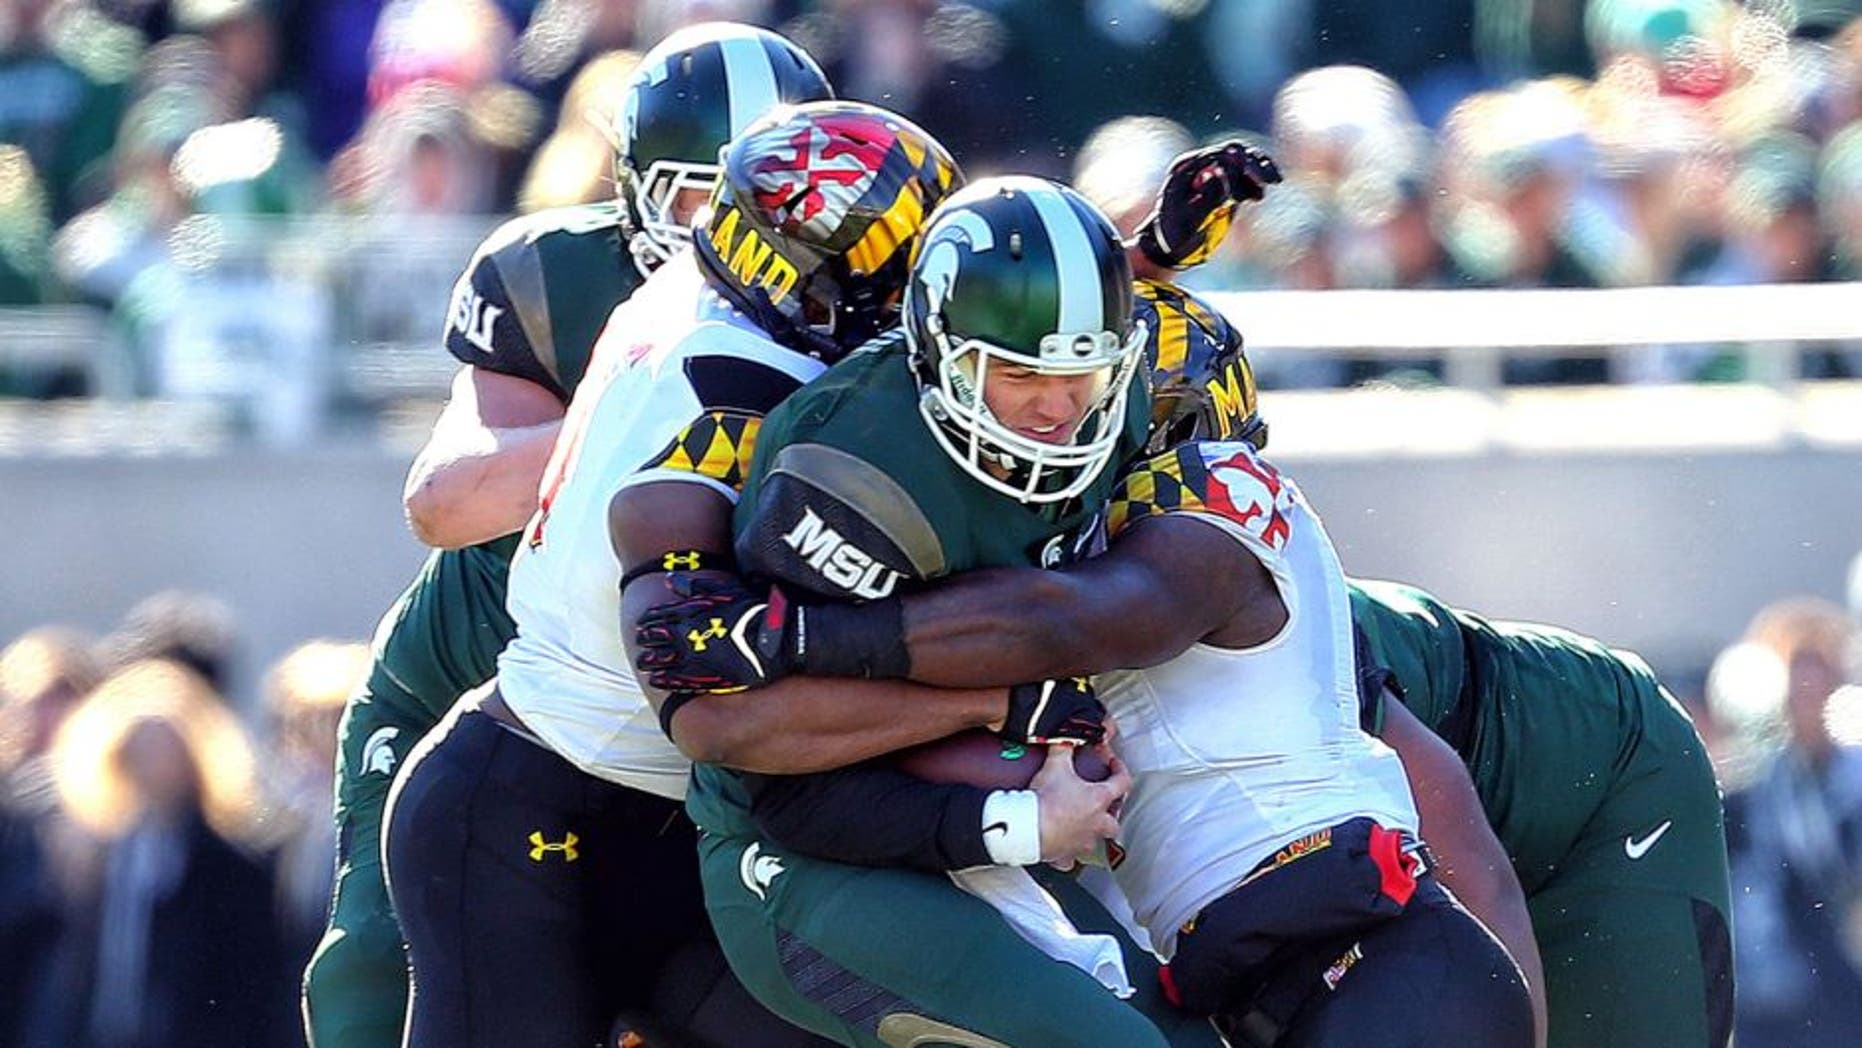 Nov 14, 2015; East Lansing, MI, USA; Michigan State Spartans quarterback Connor Cook (18) carries the ball against the Maryland Terrapins during the first half at Spartan Stadium. Mandatory Credit: Mike Carter-USA TODAY Sports